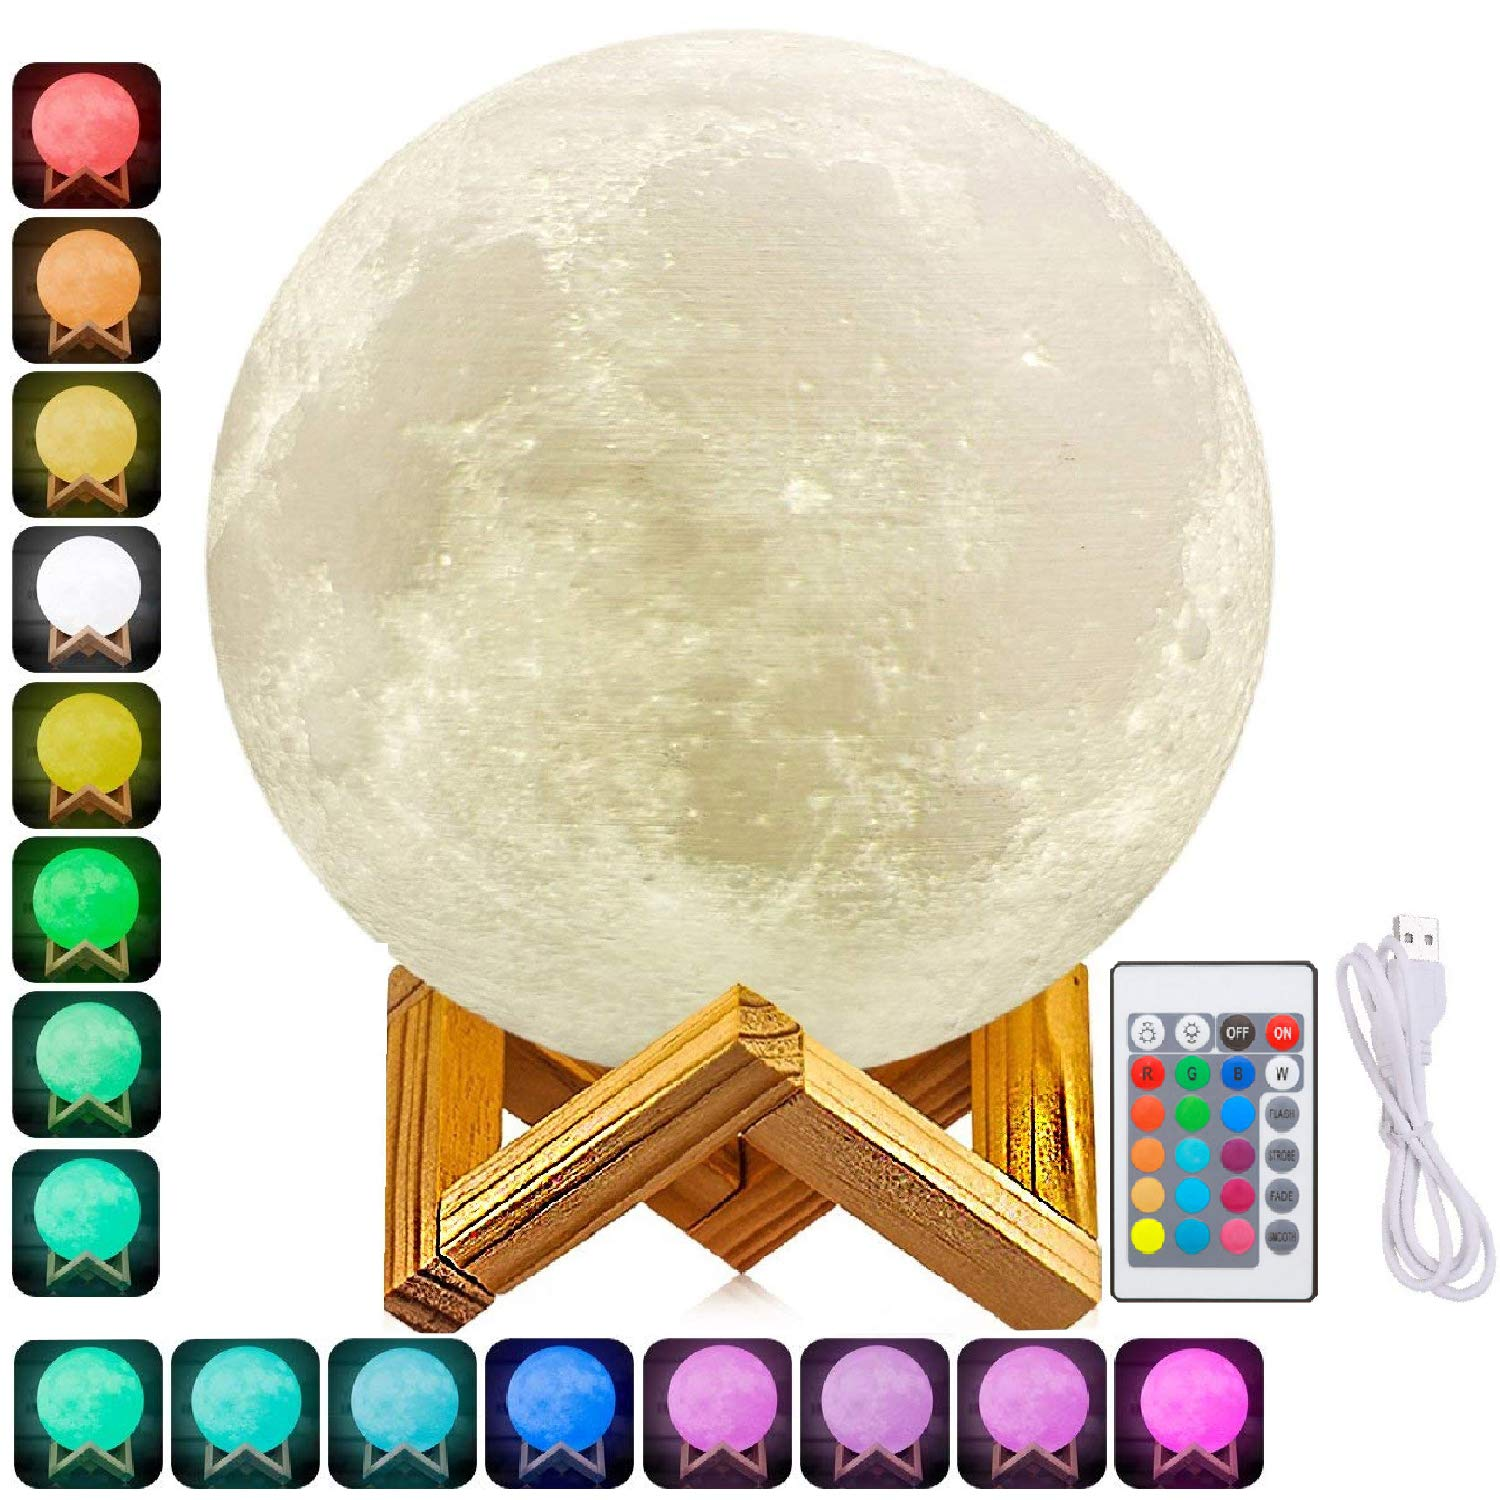 7 Inch Moon Lamp, 3D Printed Moon Light with Stand, The Moon Night Light with LED Warm White 3000K and Warm Yellow 3000K, Touch Control(Diameter18CM) Touch Control(Diameter18CM) zhong guang mei da EML-12